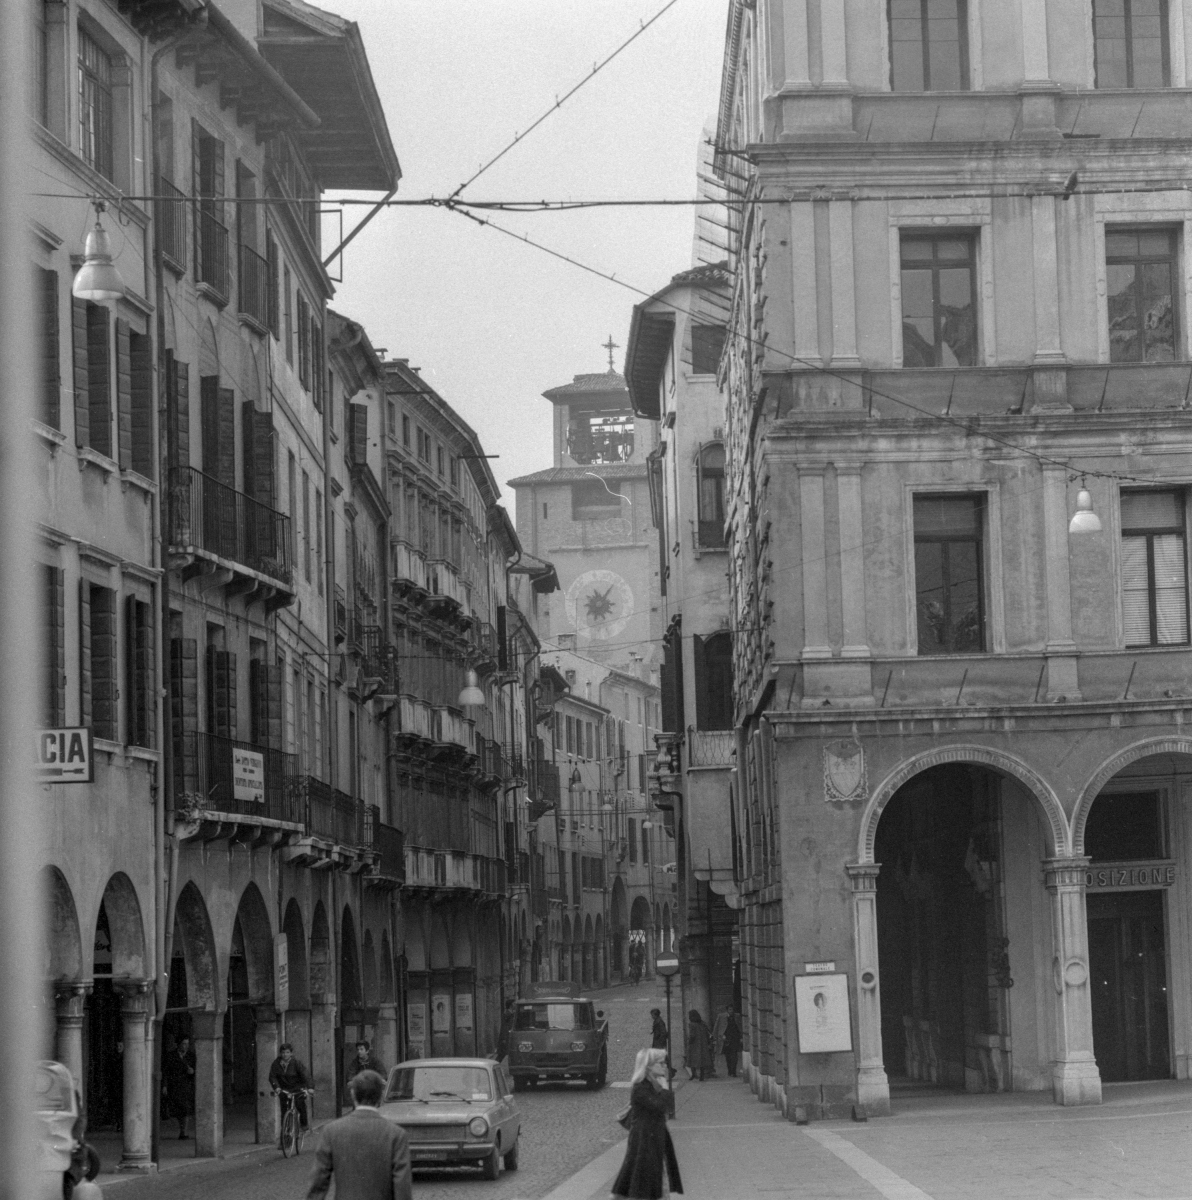 piazza10-1977